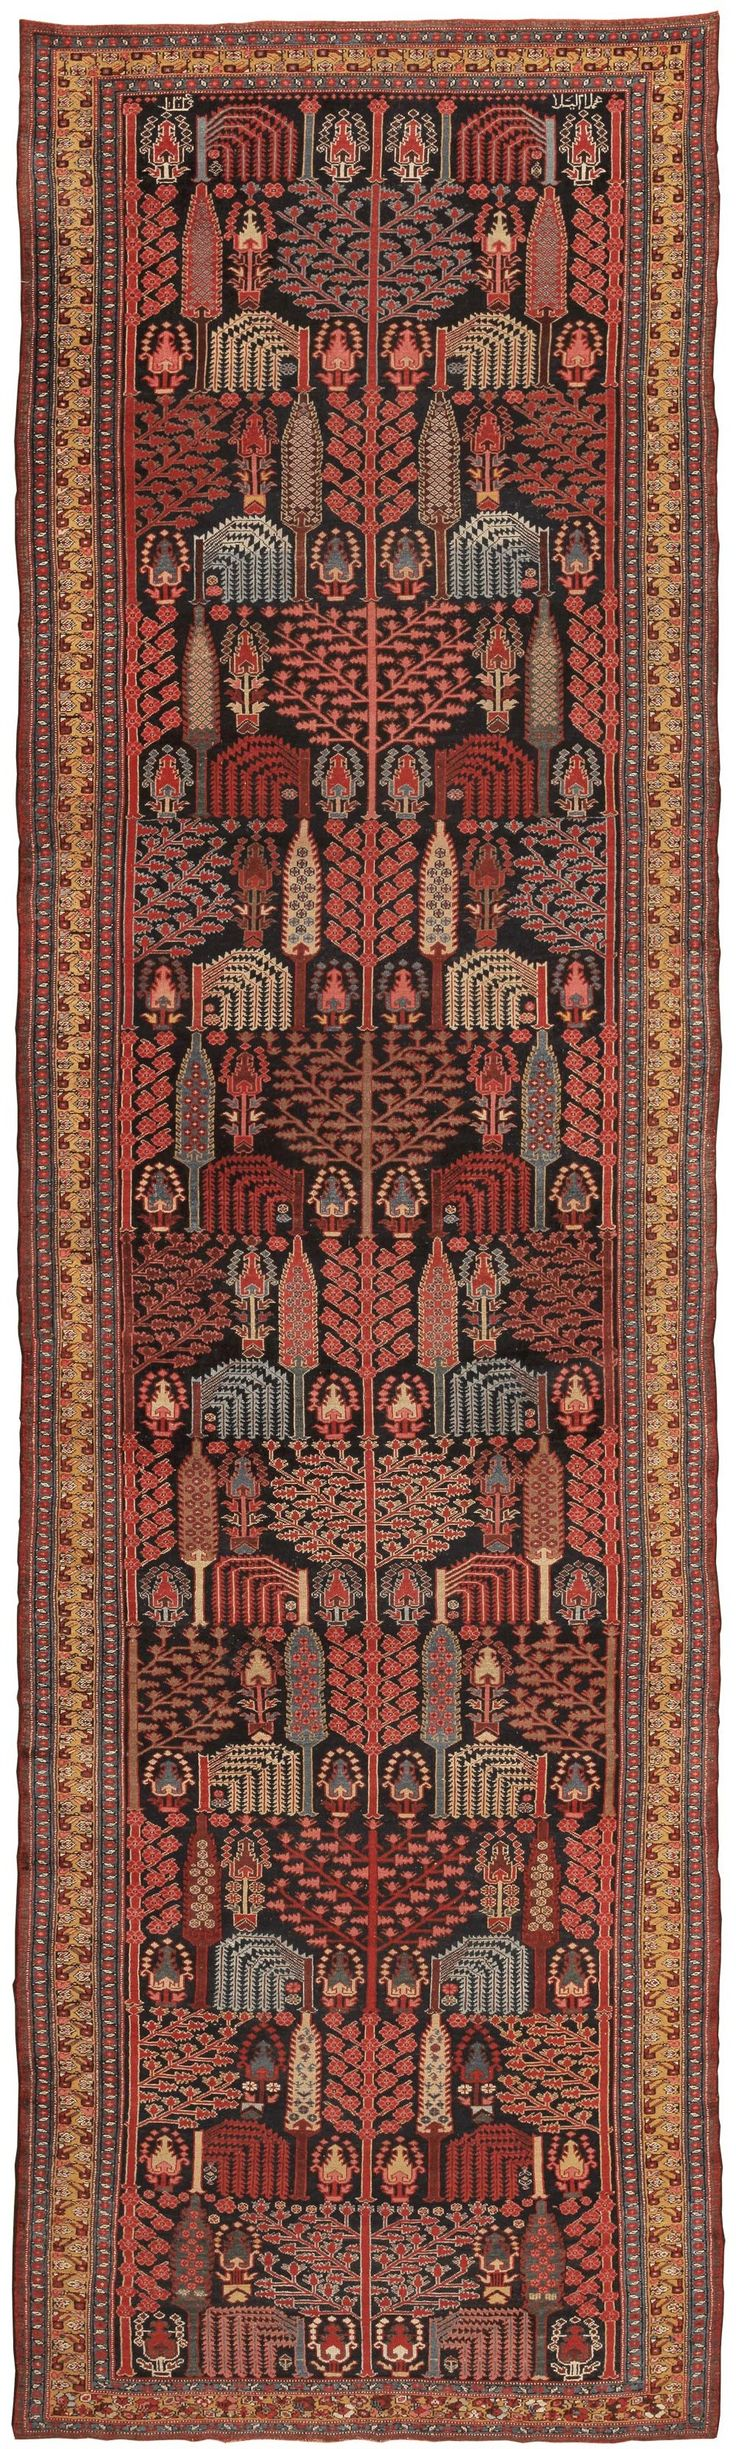 Antique Oriental Bakhtiari rug, Persia. Handmade and woven by master rug makers in Persia with a detailed weeping willow pattern